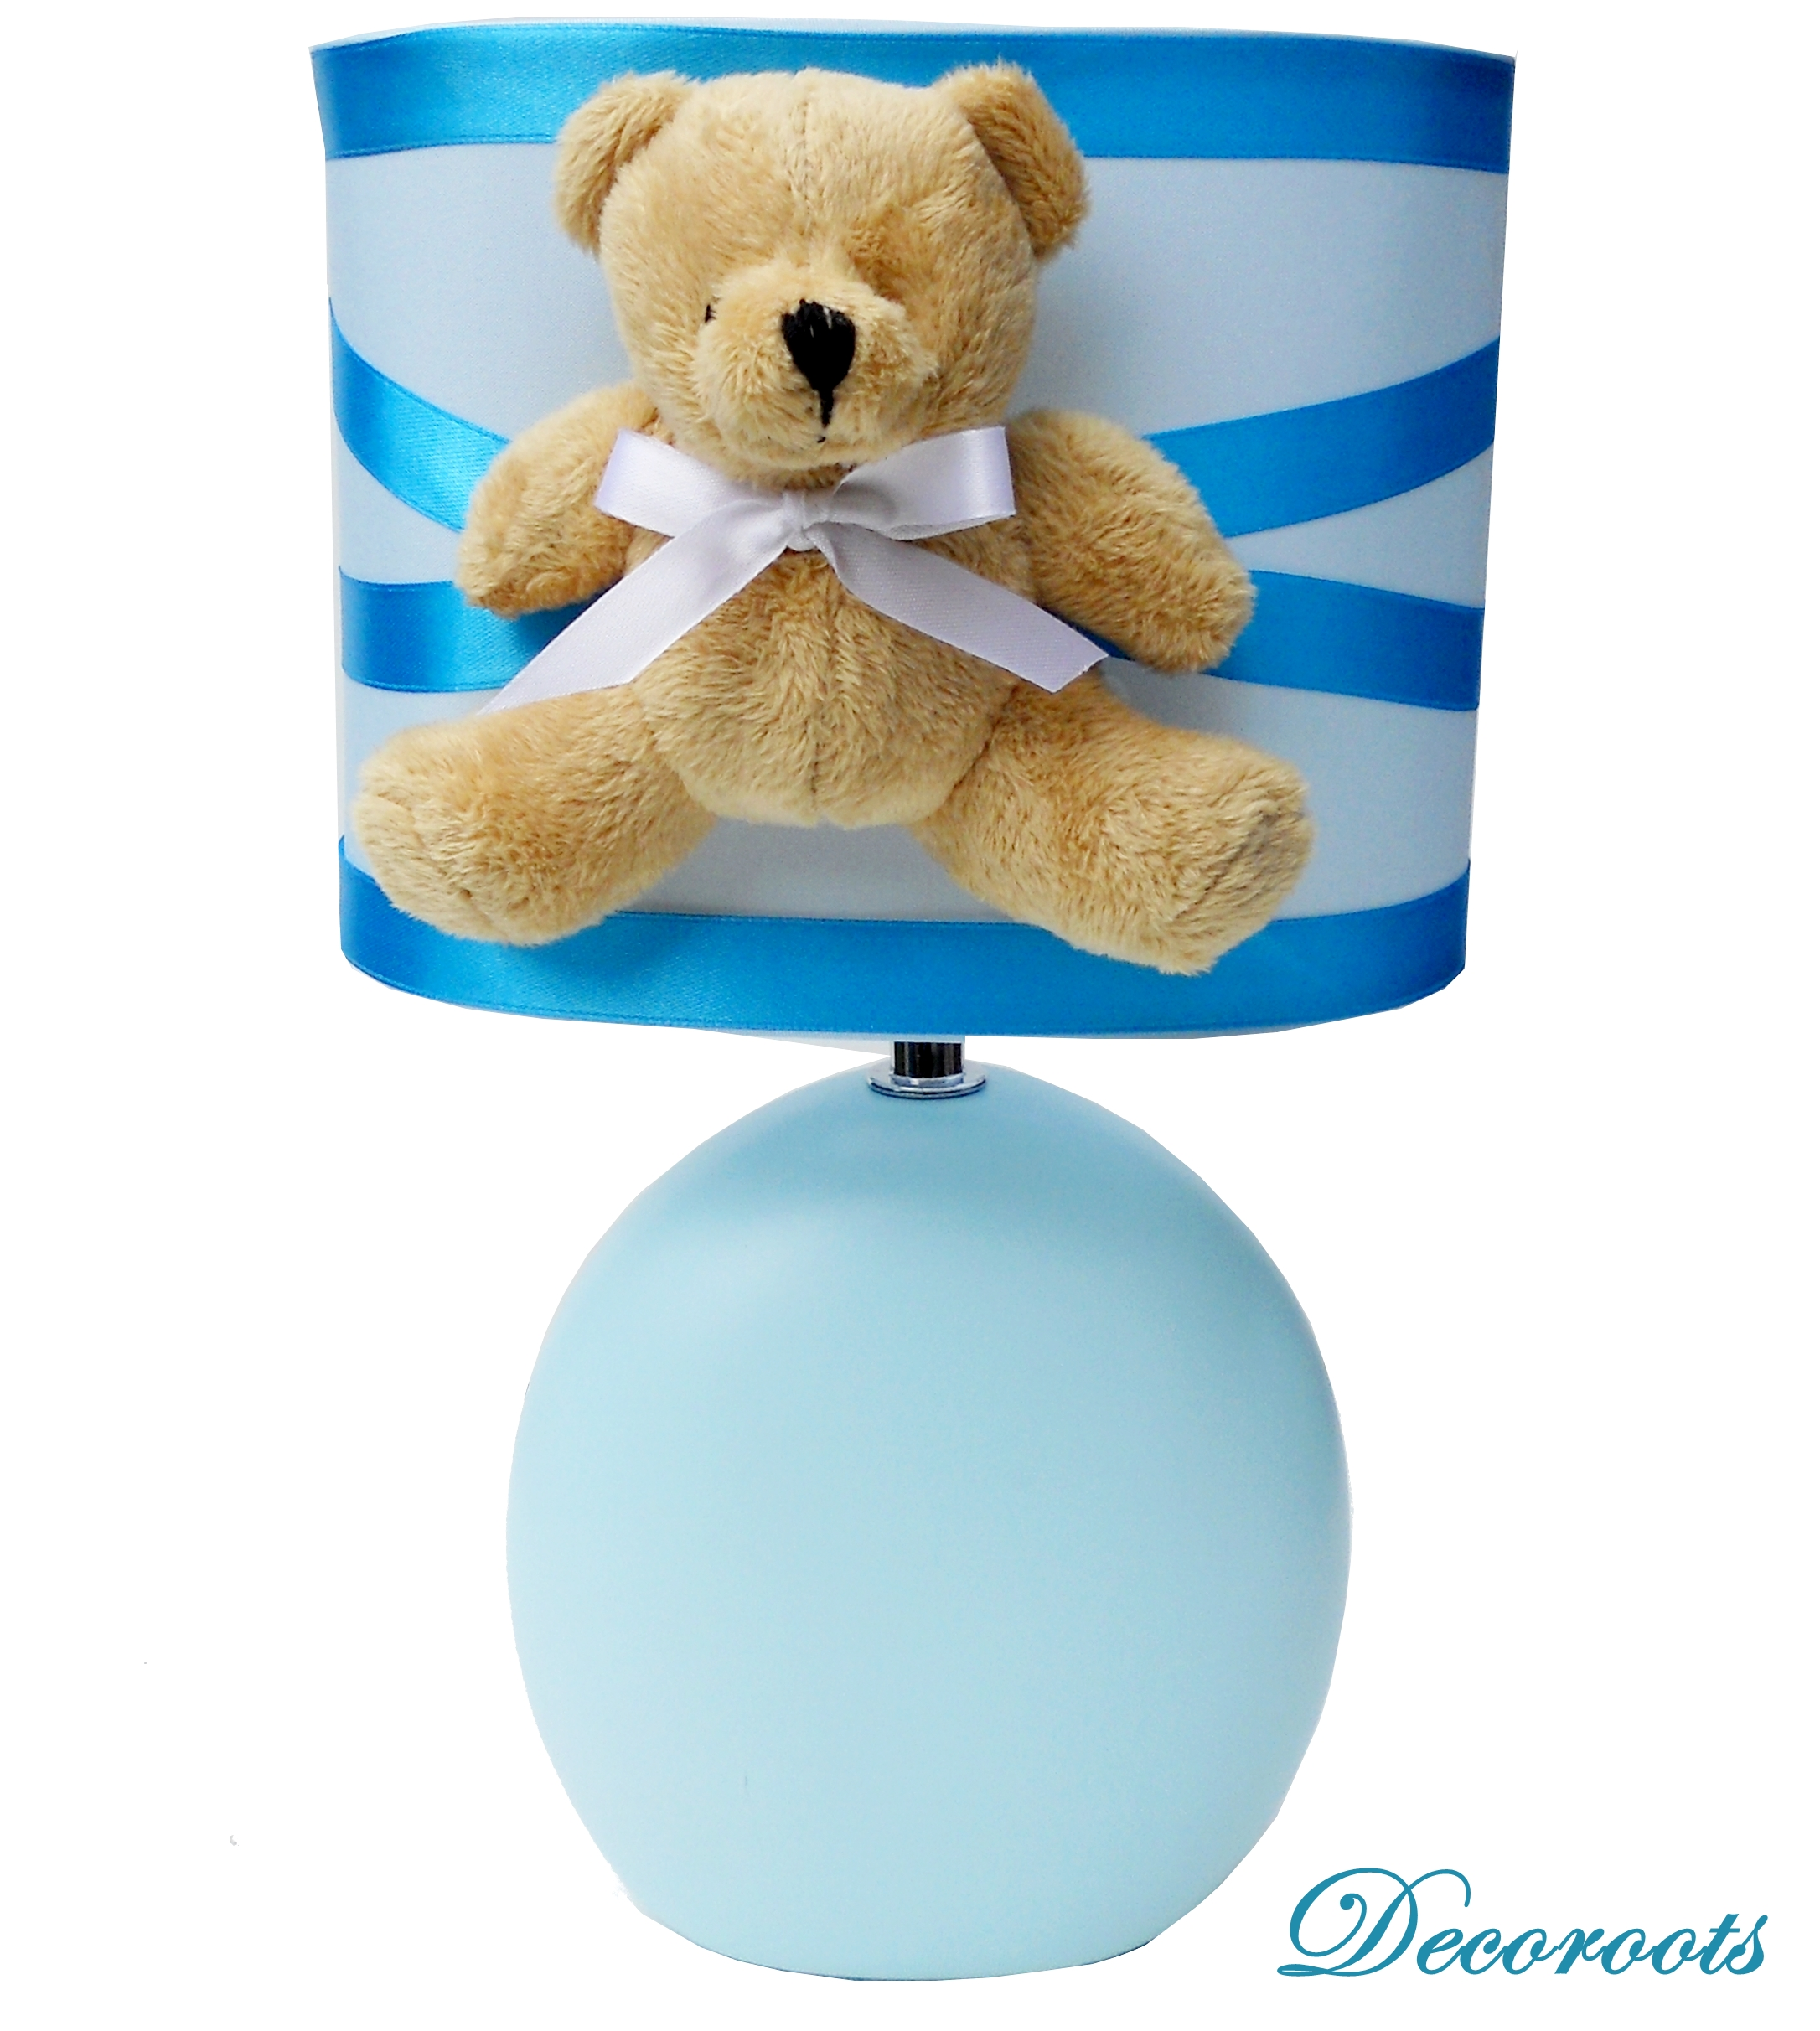 lampe design ours peluche bleu enfant b b luminaire enfant b b decoroots. Black Bedroom Furniture Sets. Home Design Ideas